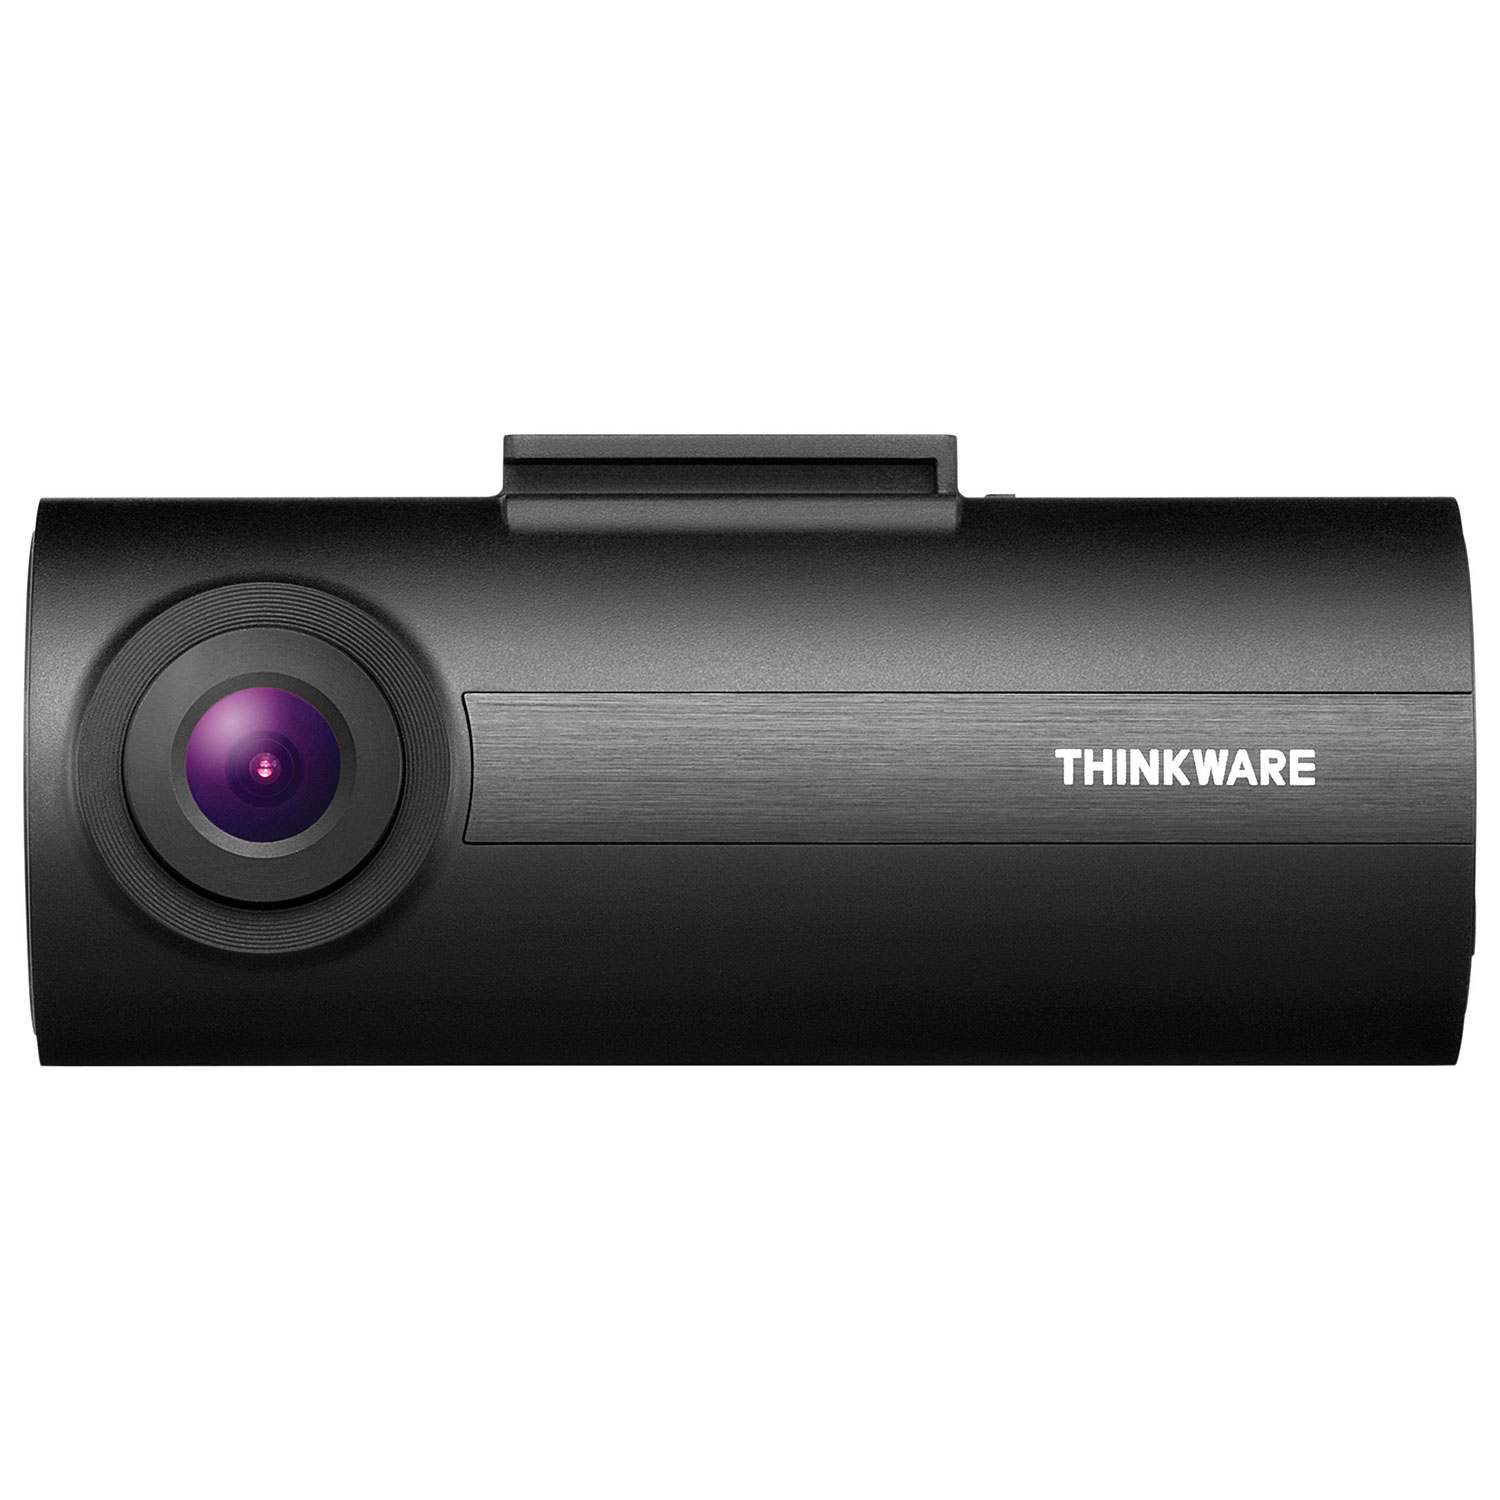 THINKWARE DASH CAM F50 1080p Full HD 30fps รุ่นคุ้มค่า..